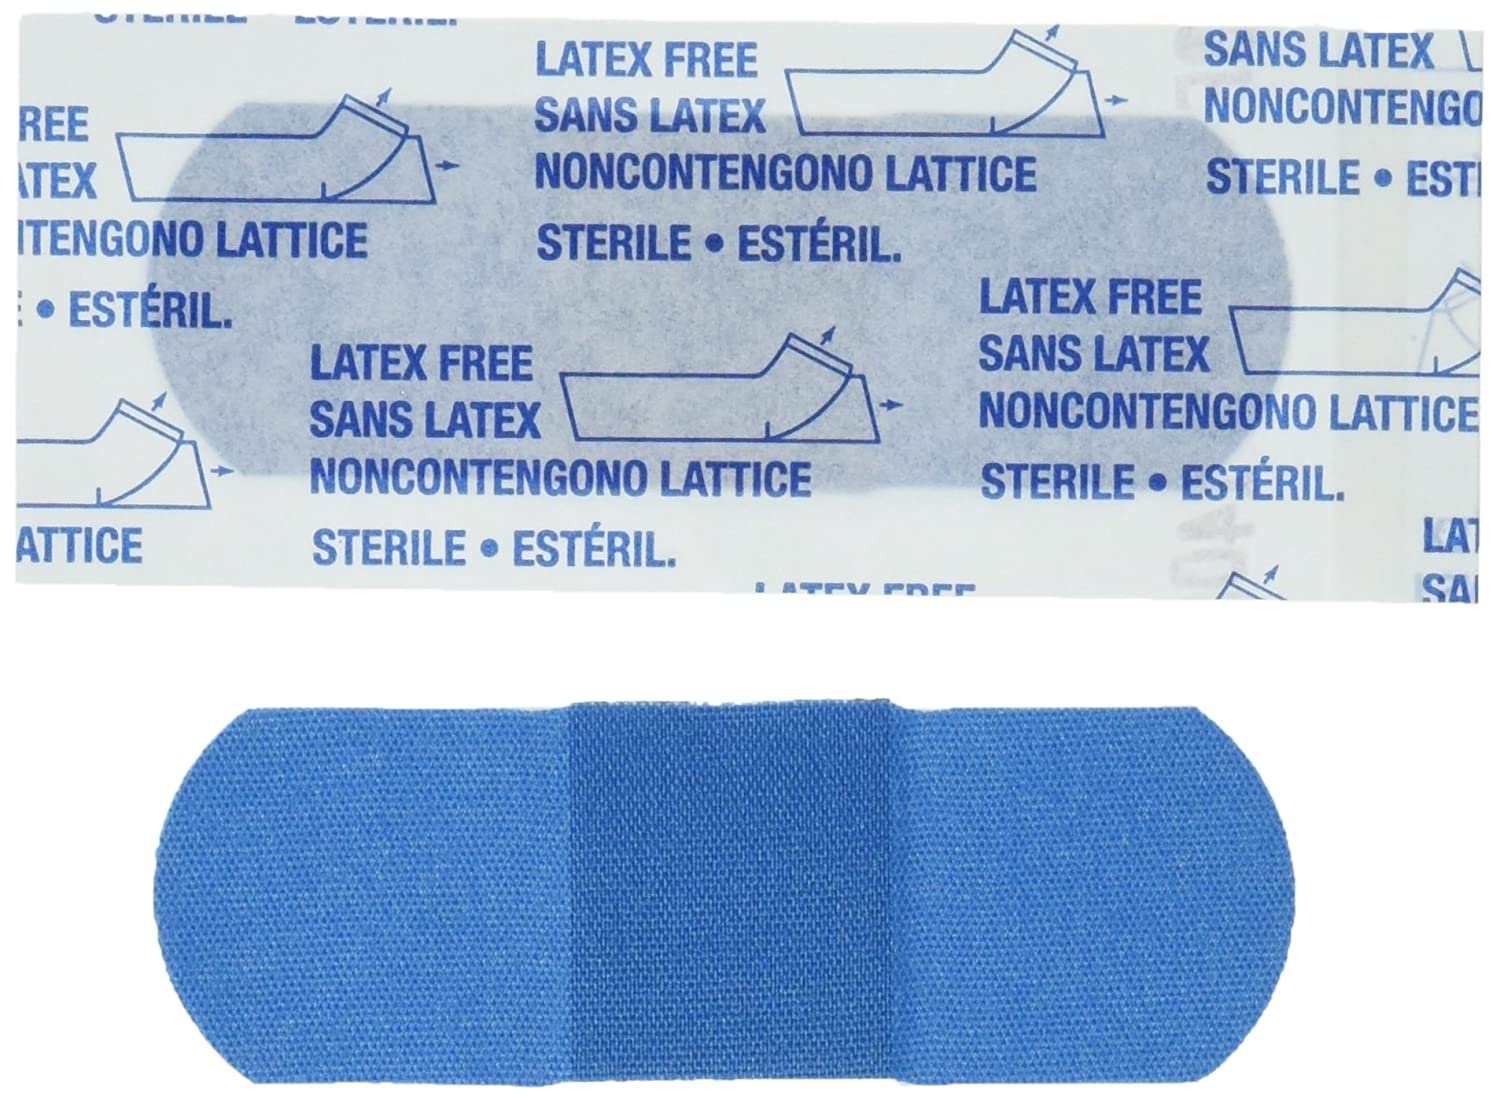 American White Cross-1631025 Blue Metal Detectable Adhesive Strips, Sterile, Lightweight 1